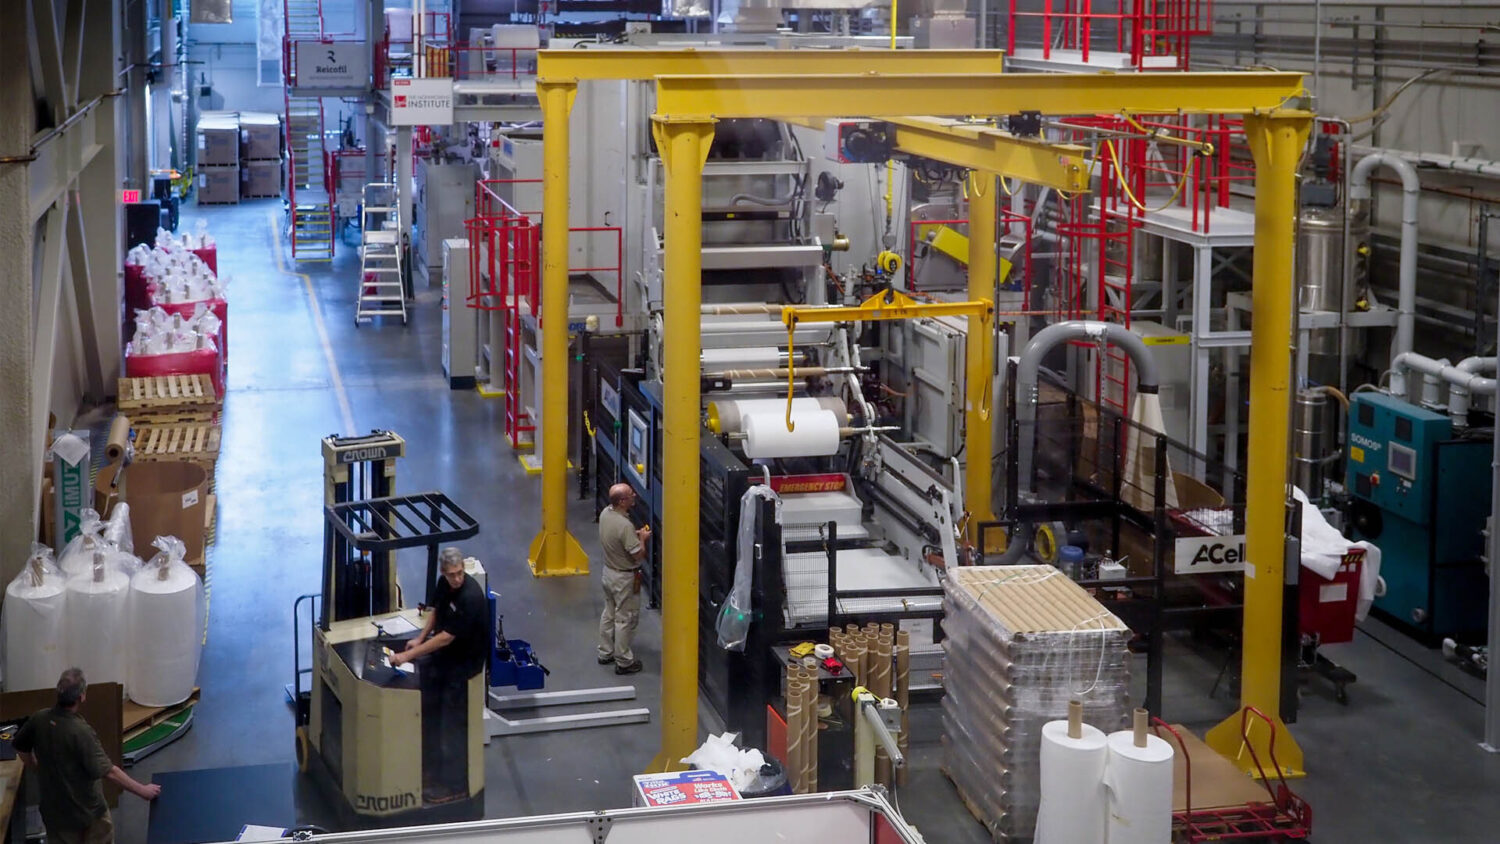 Innovative fabrics developed on NC State's campus being manufactured in an on-site facility.